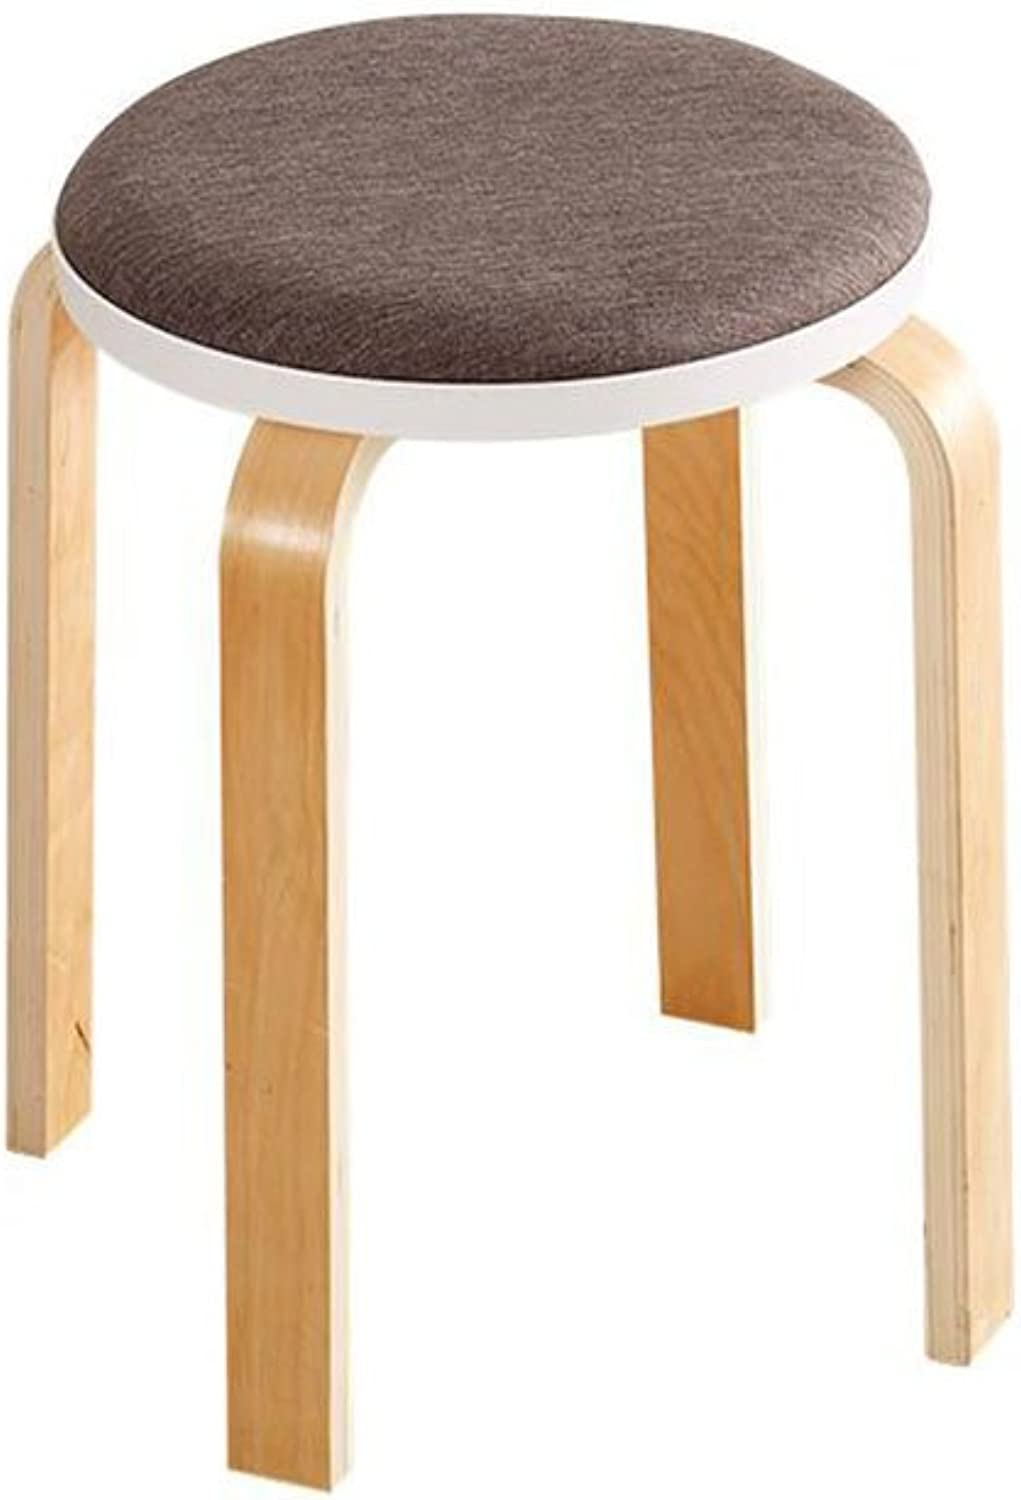 CJC Wooden Stool Solid Wood Stool Surface Cozy Breathable Home Office Furniture Kitchen (color   3)